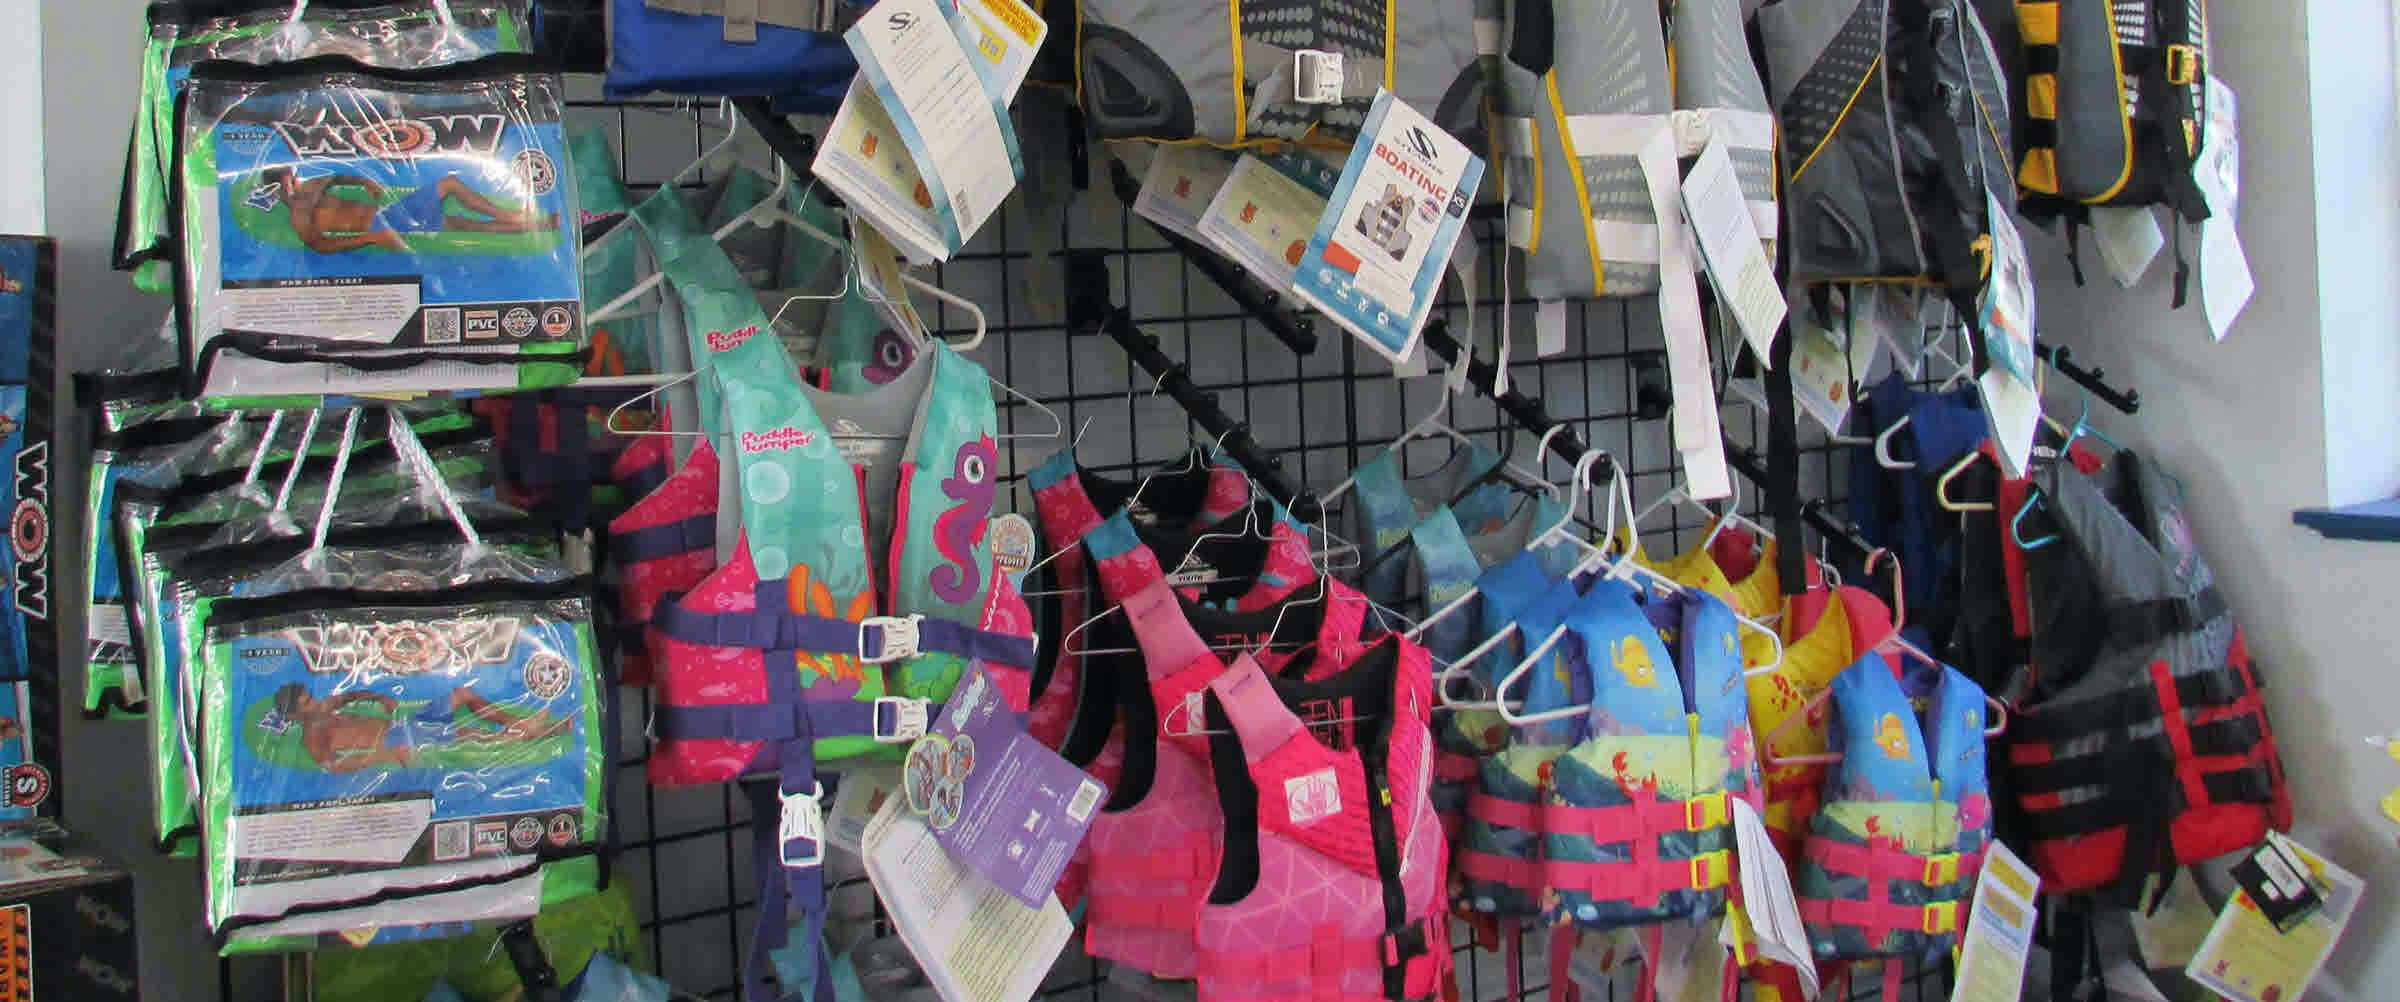 <p>GREAT SELECTION OF LIFE JACKETS</p>